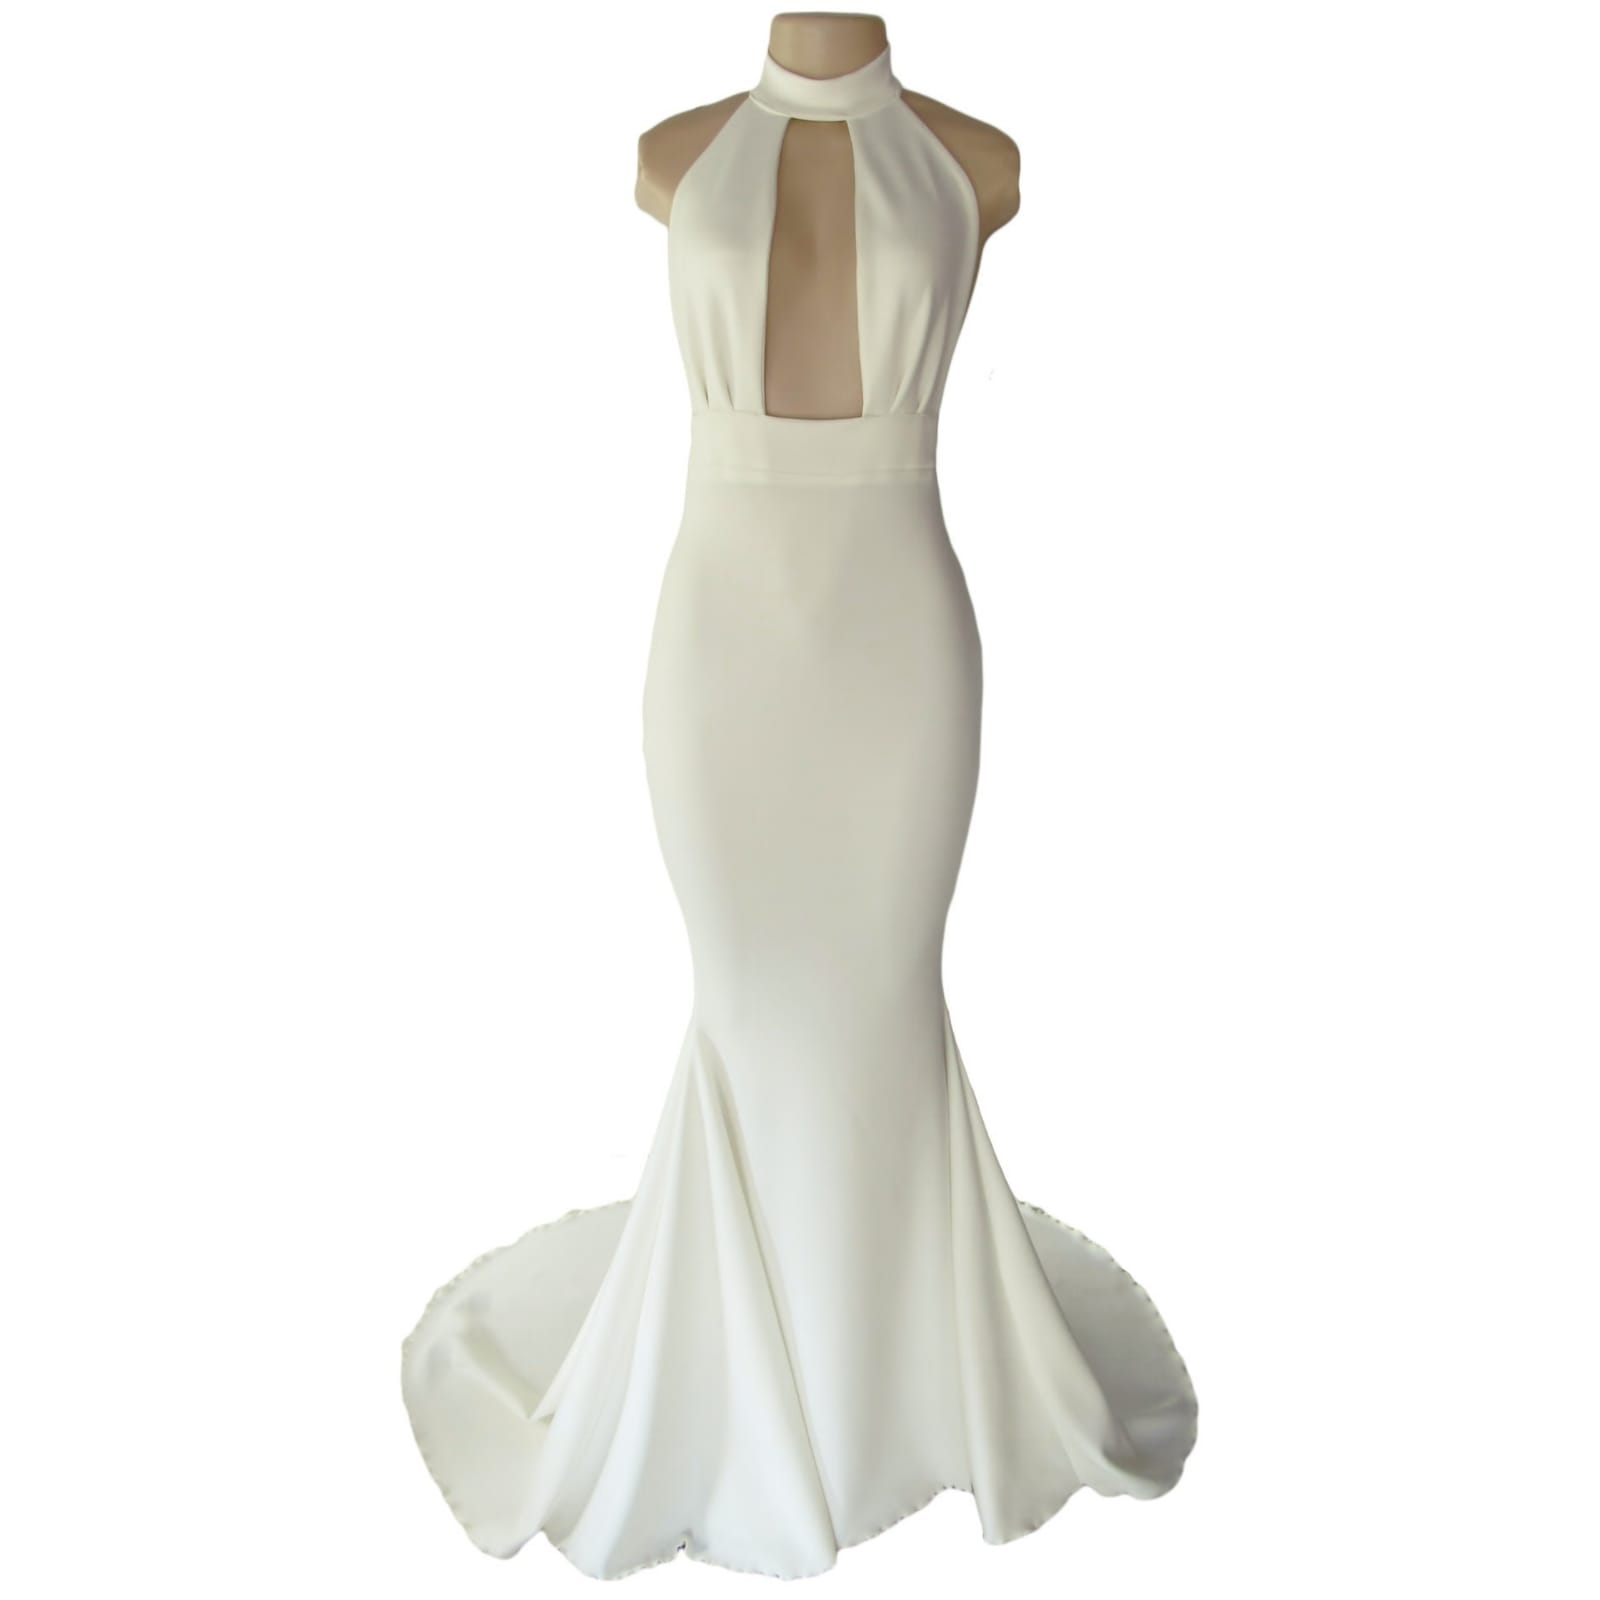 Plunging neckline ivory soft mermaid prom dress 4 ivory soft mermaid prom dress with a plunging and choker neckline with a naked back and a train